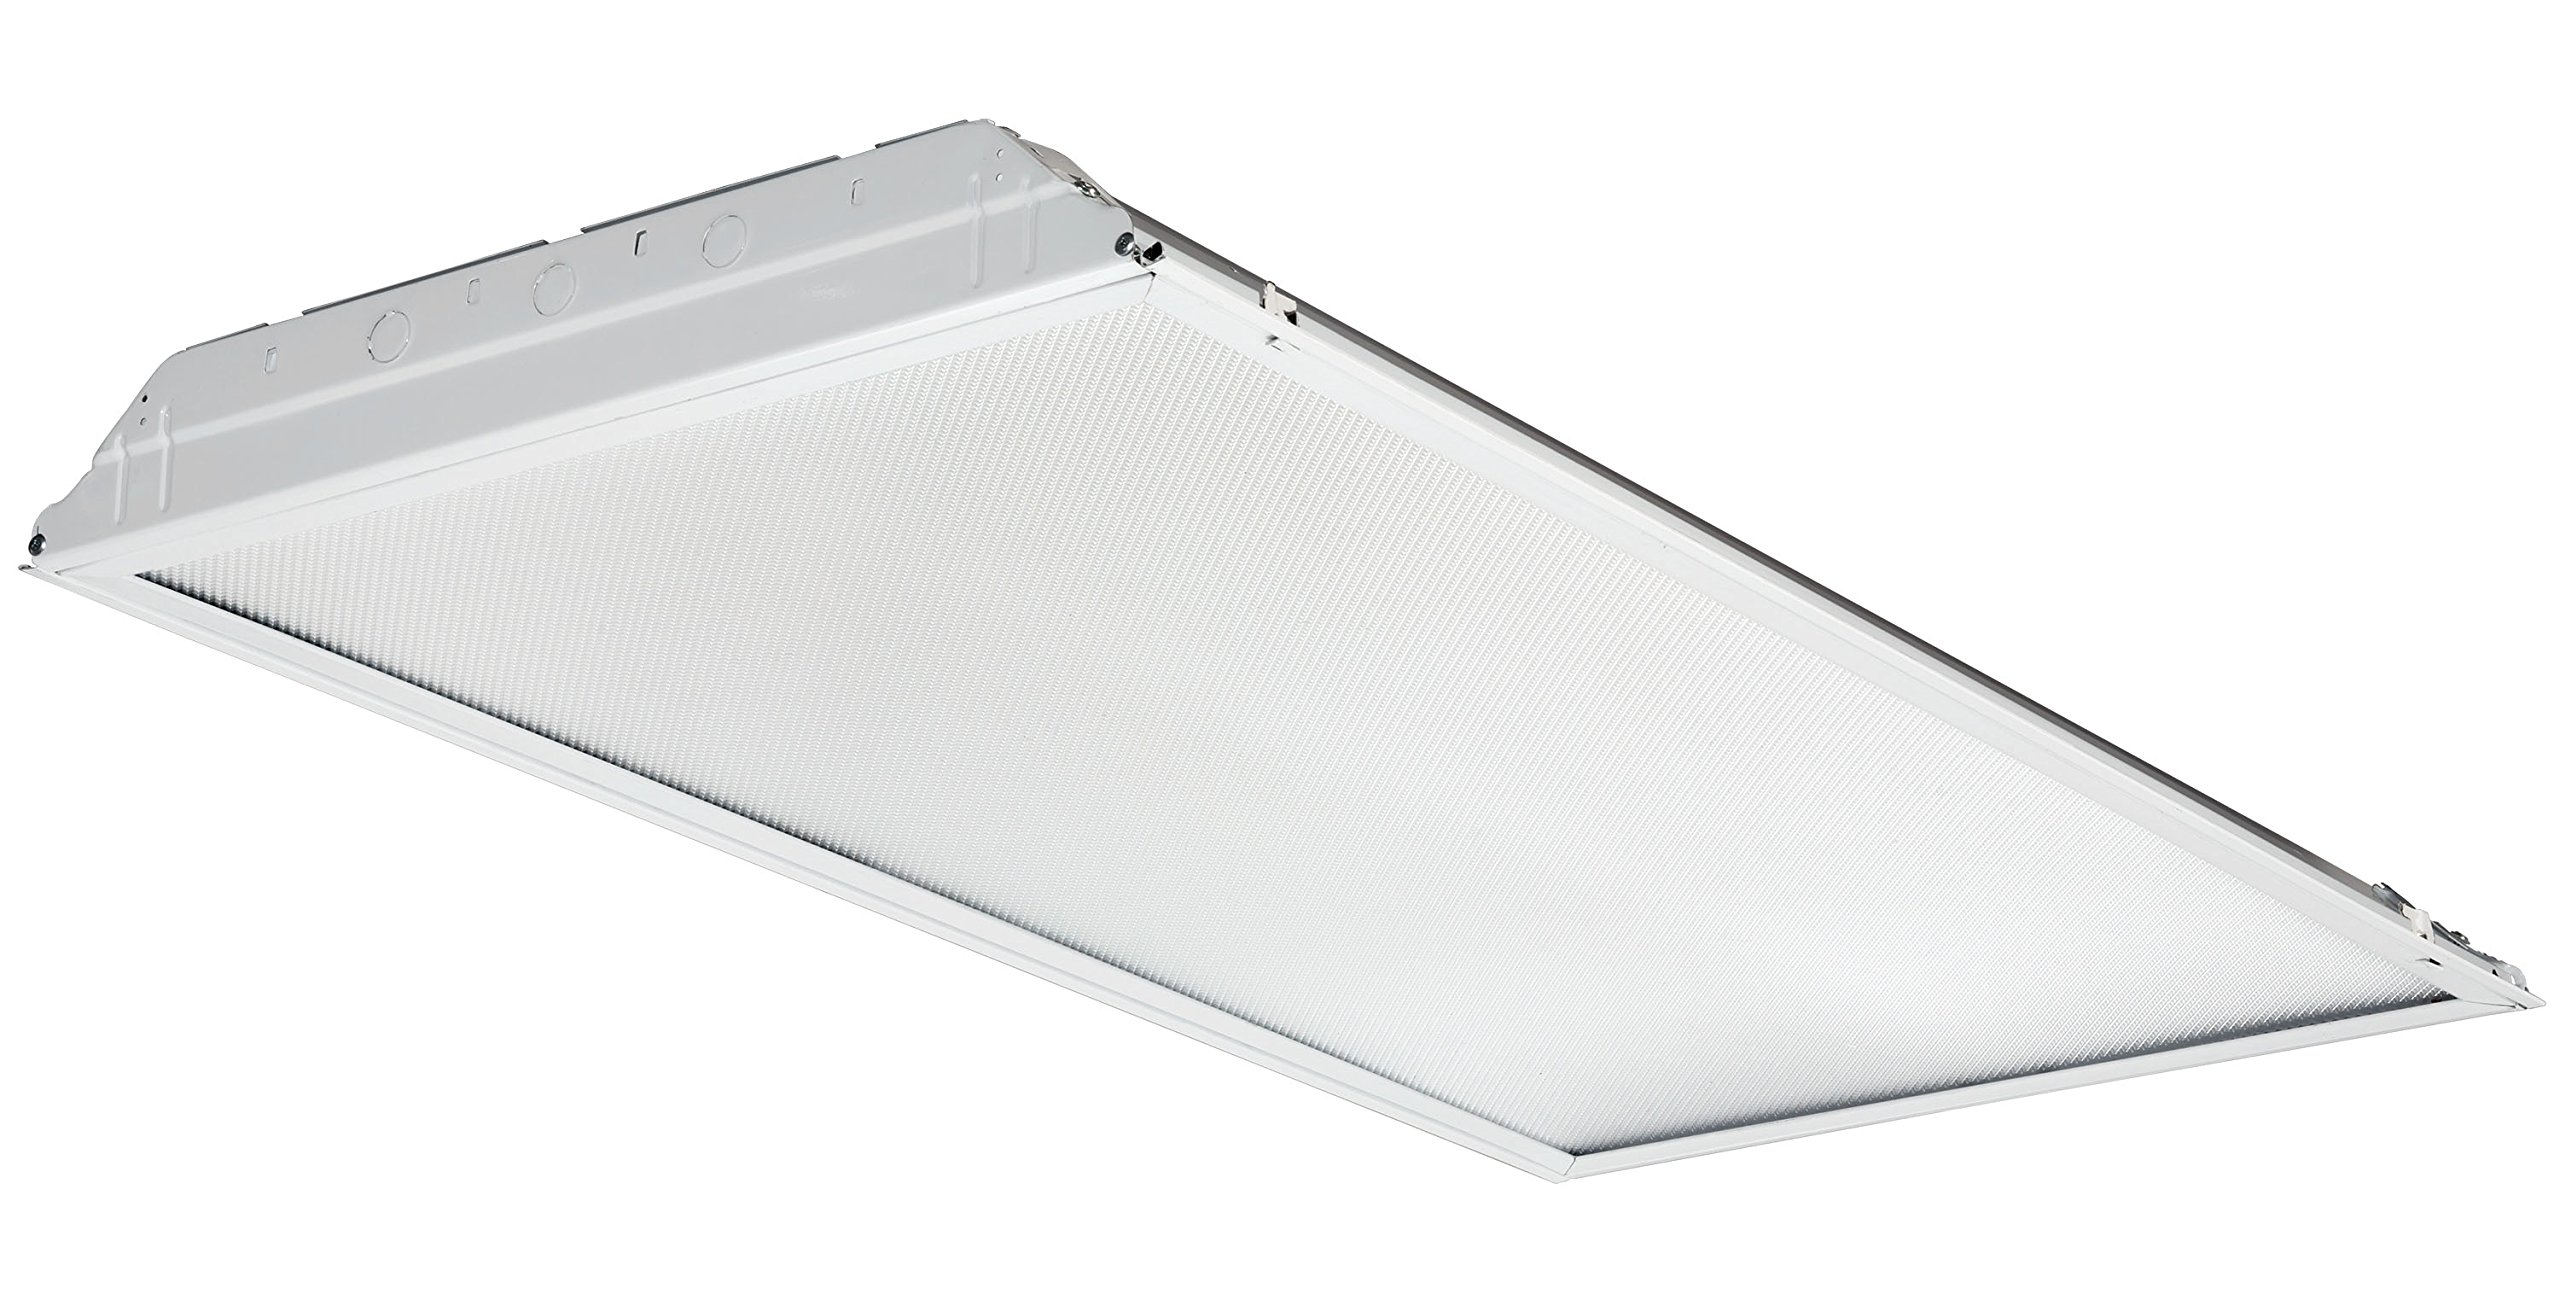 Lithonia Lighting 2GTL 4 48L EZ1 LP835 2-Foot White LED Lensed Troffer with eldoLED Driver, 3500K, 4800 Lumens, 2-Foot by 4-Foot